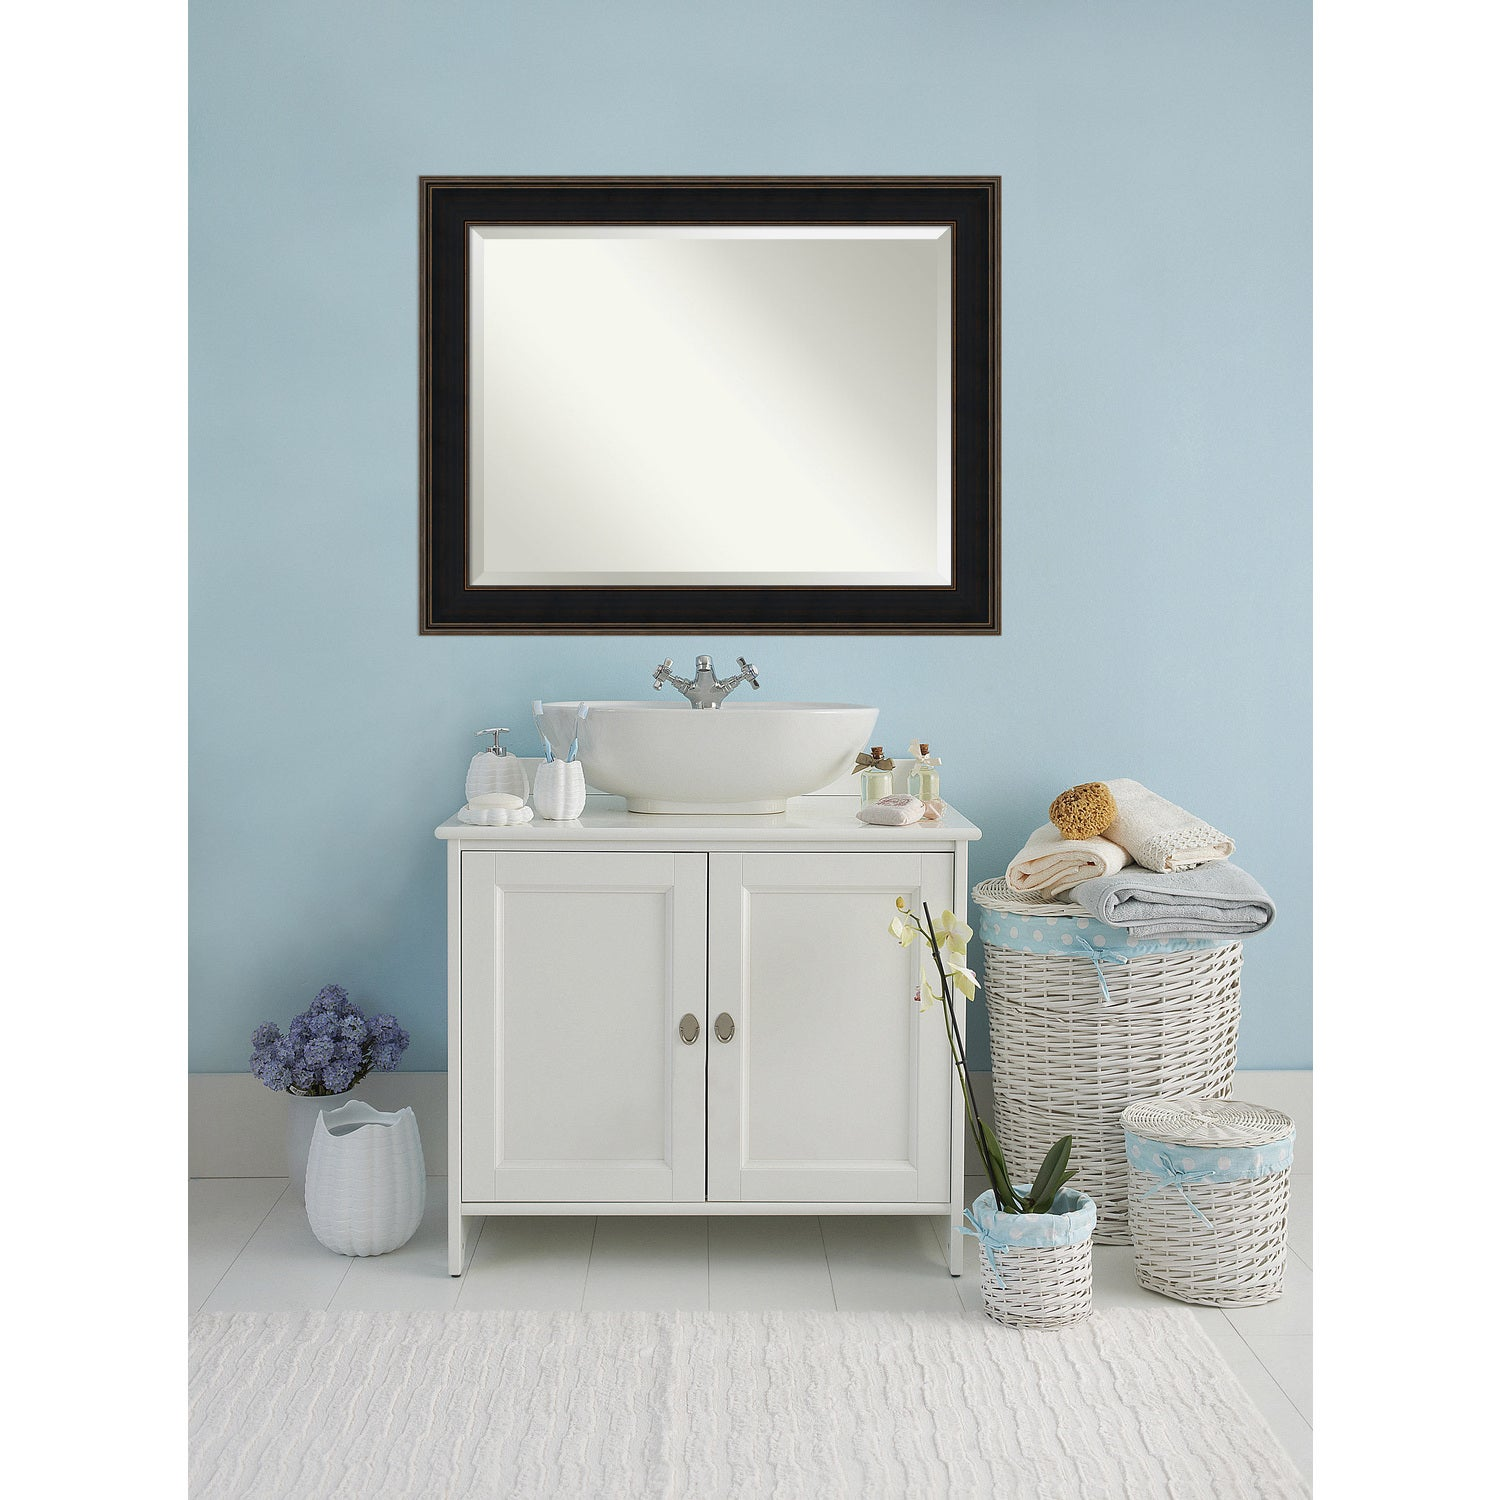 Shop Bathroom Mirror Oversize Large, Mezzanine Espresso 48 x 38-inch ...